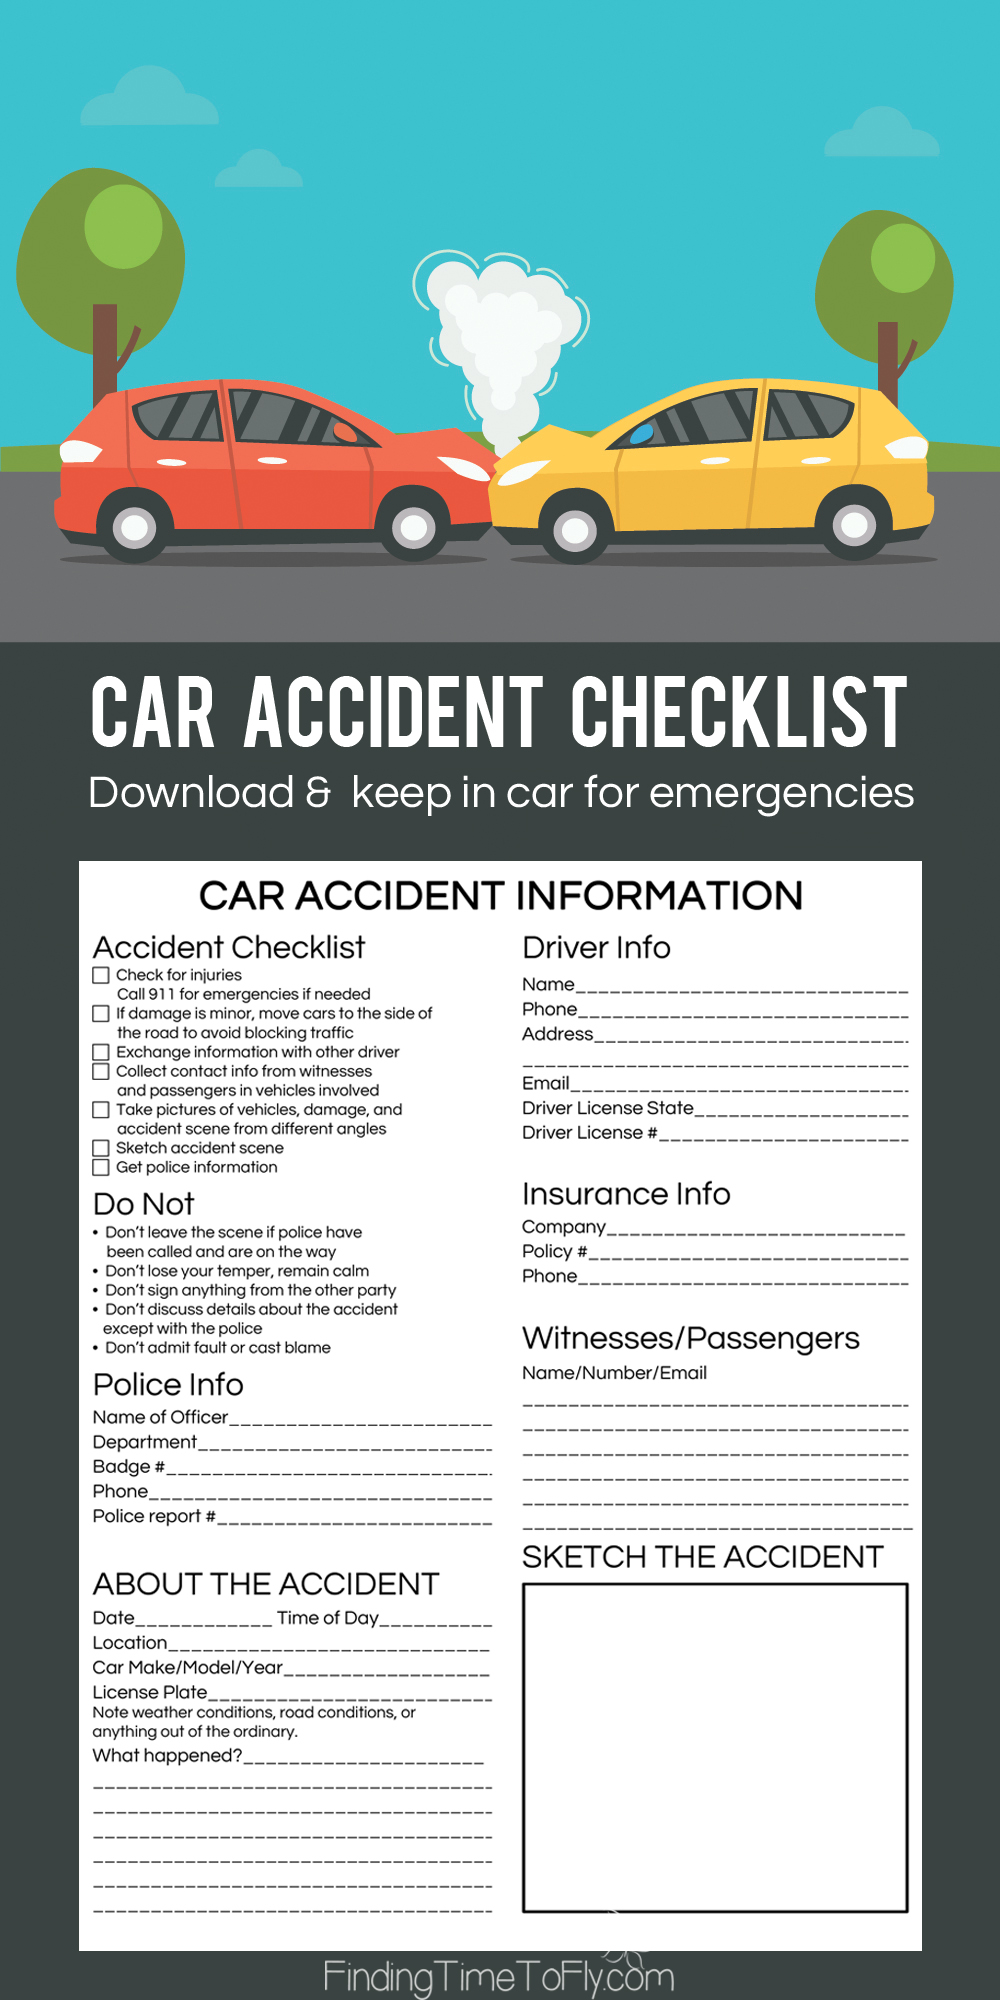 Indiana Accident Attorney